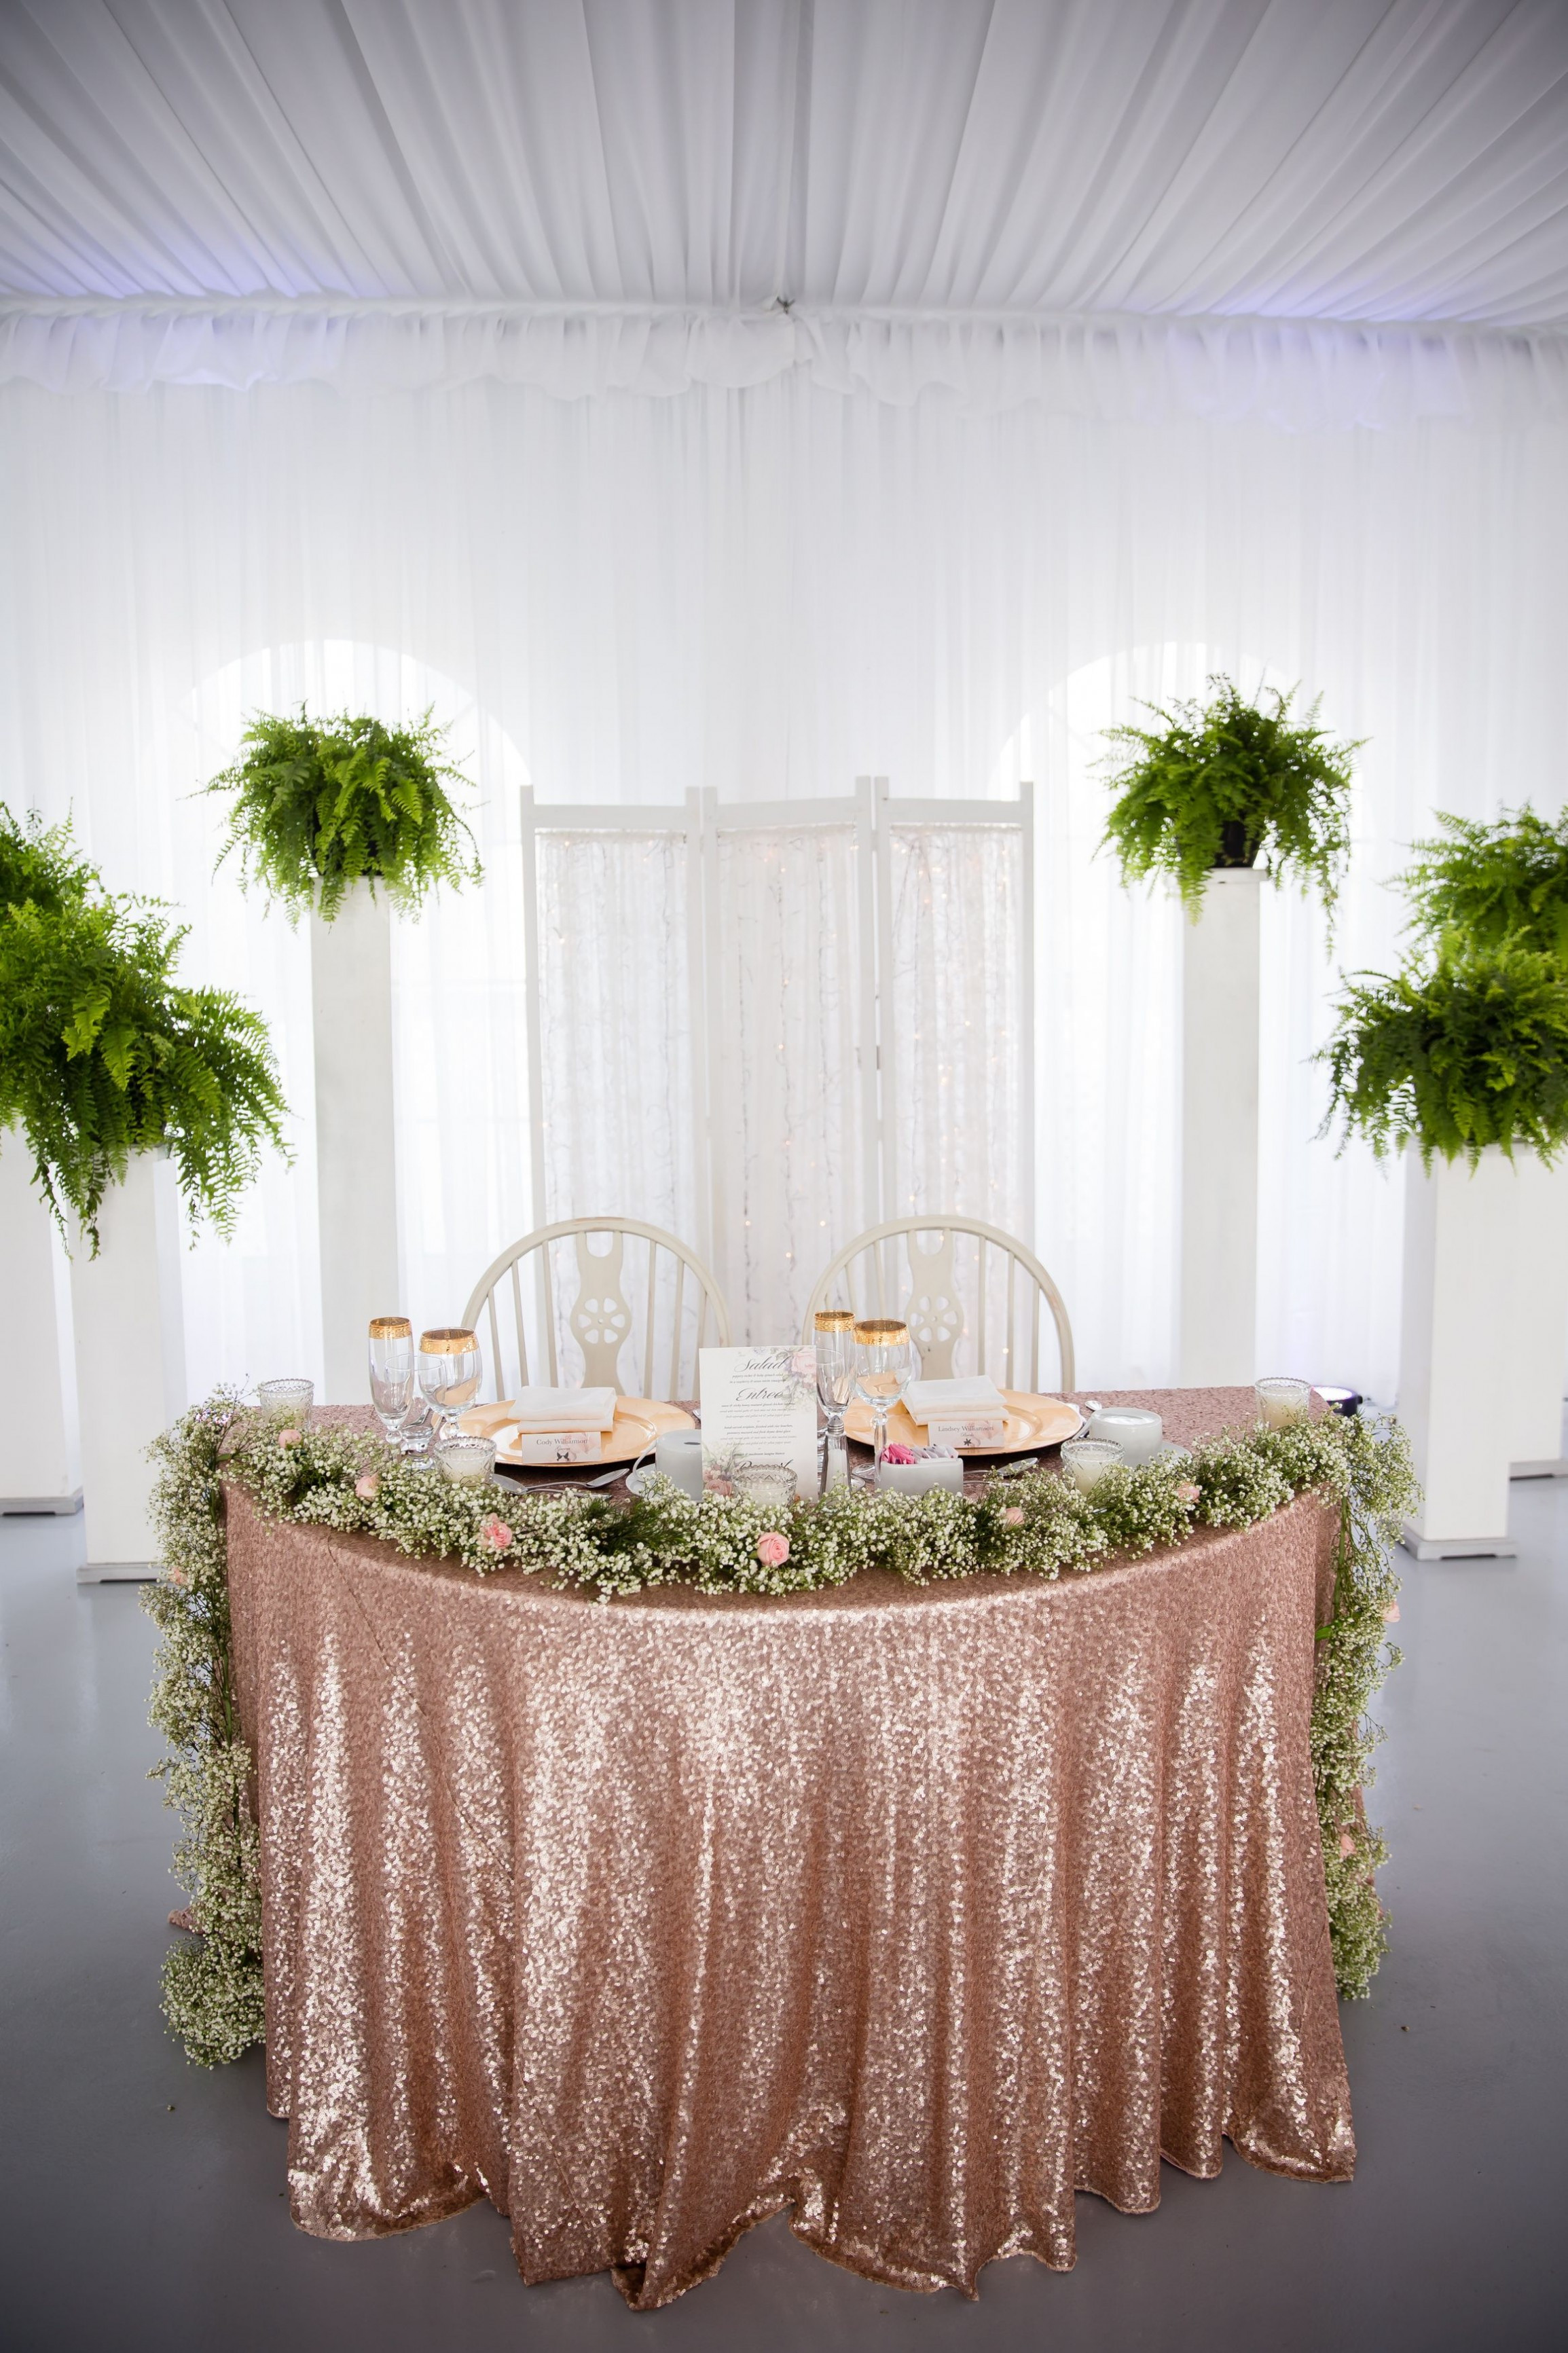 Gold Glitter Vase Of Lesmeubles Mirrored Square Vase 3h Vases Mirror Table Decorationi Regarding Image De Lesmeubles Our Sweetheart Table Rose Gold Glitter Table Cloth with Baby S